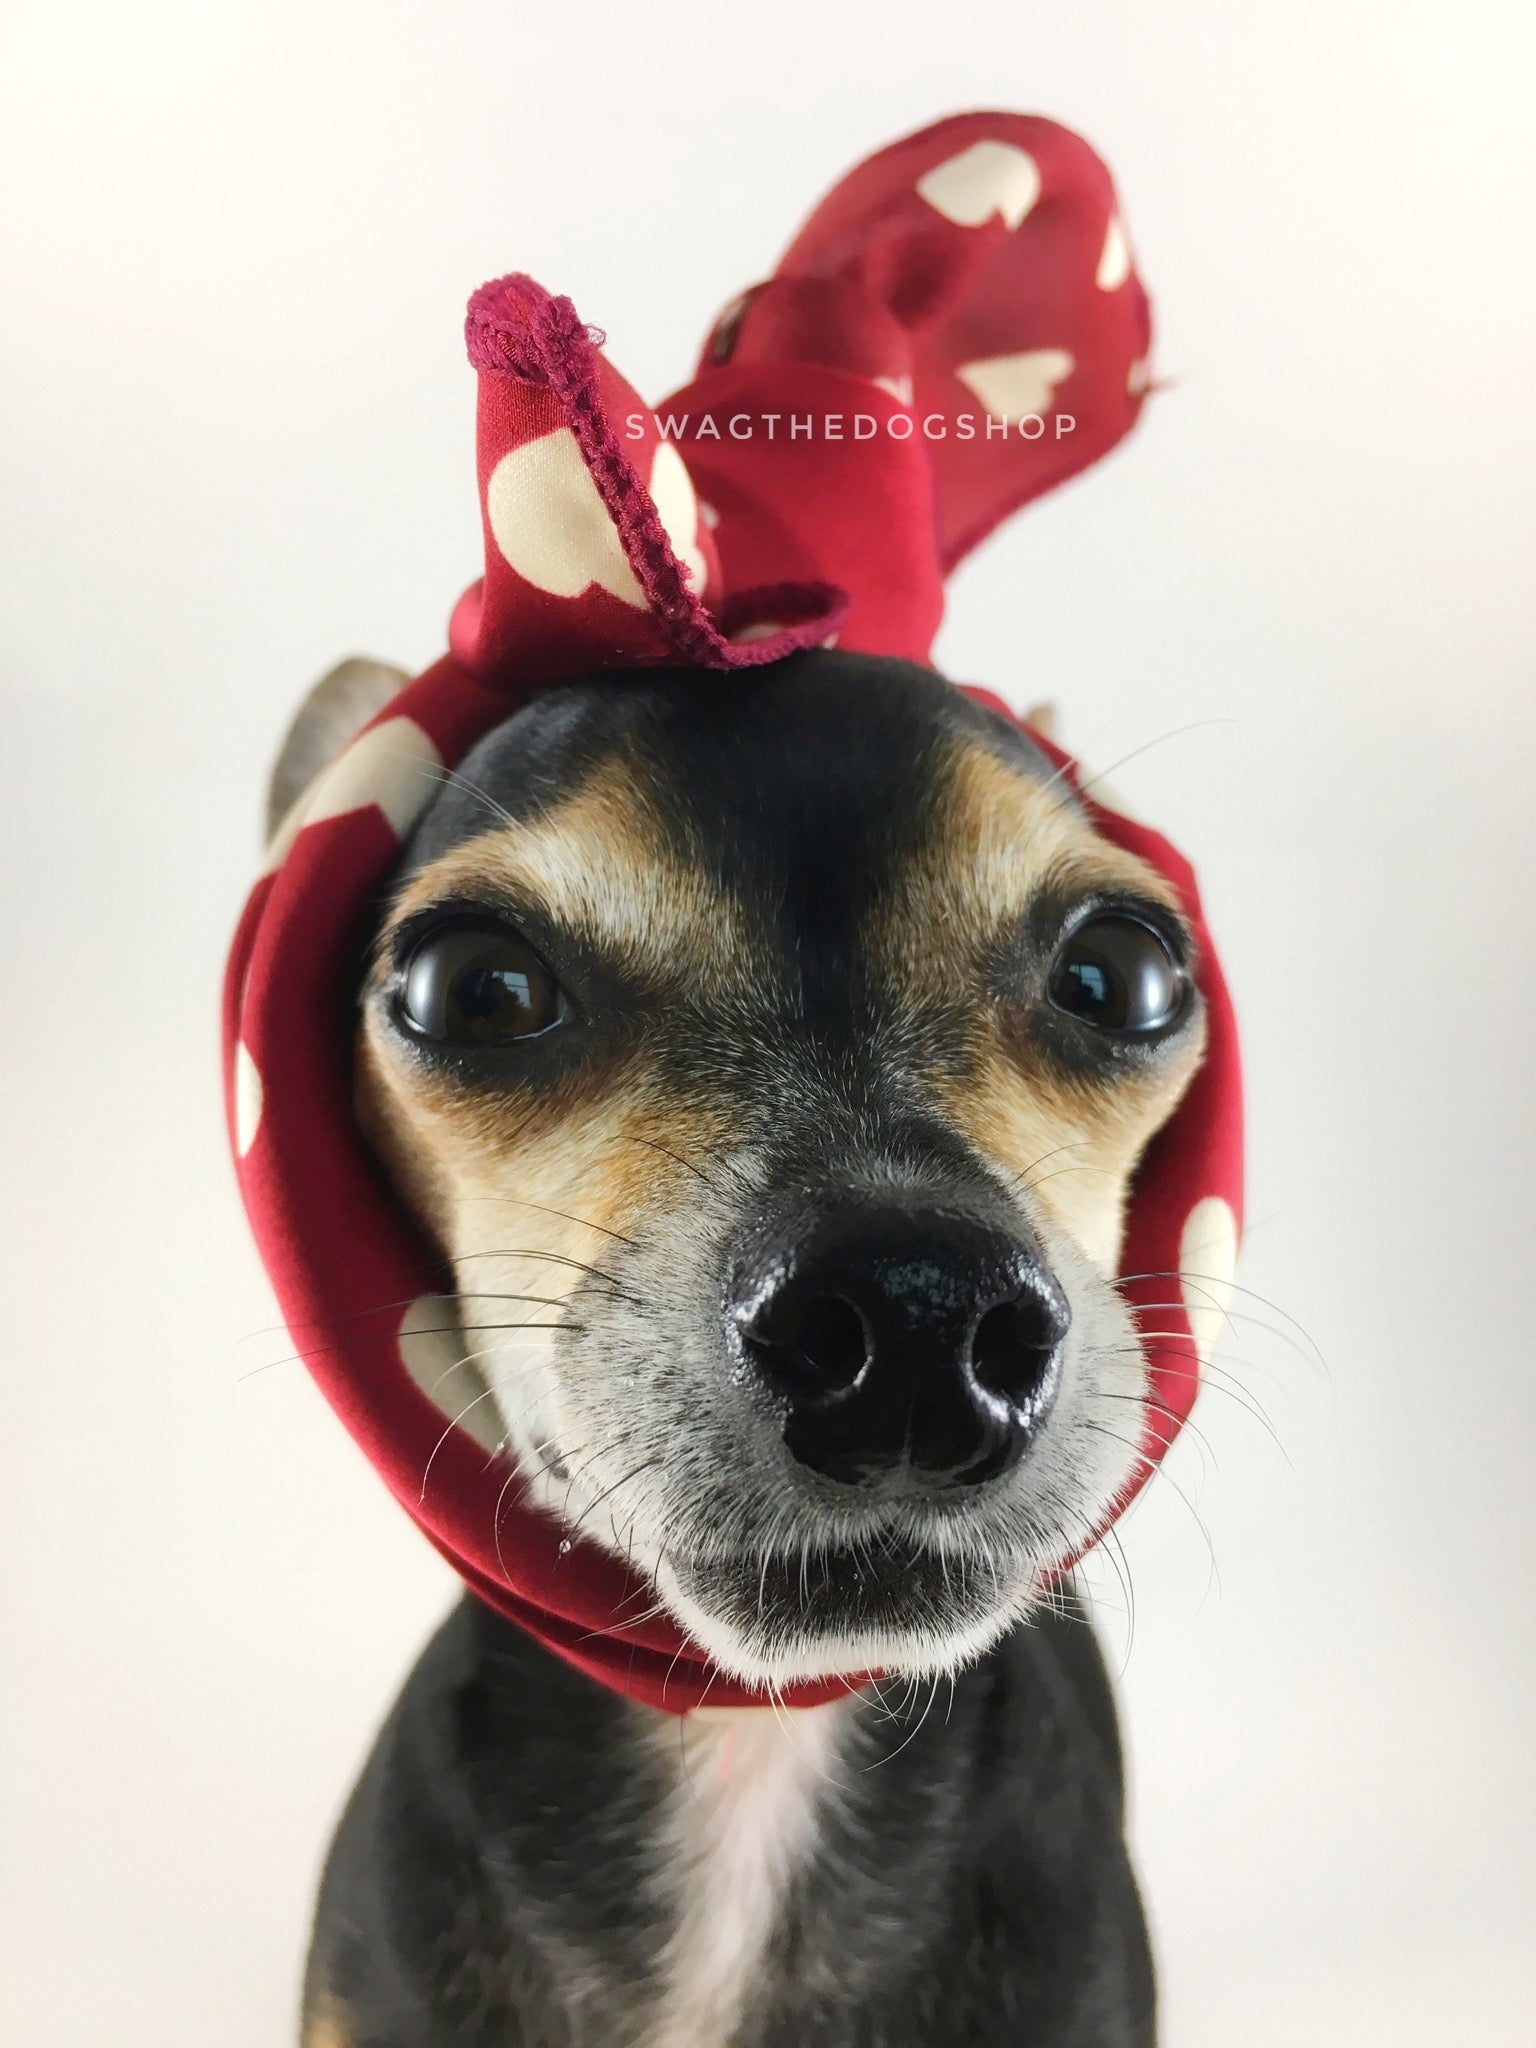 Full of Heart Red Swagdana Scarf - Bust of Cute Chihuahua Wearing Swagdana Scarf as Headband. Dog Bandana. Dog Scarf.